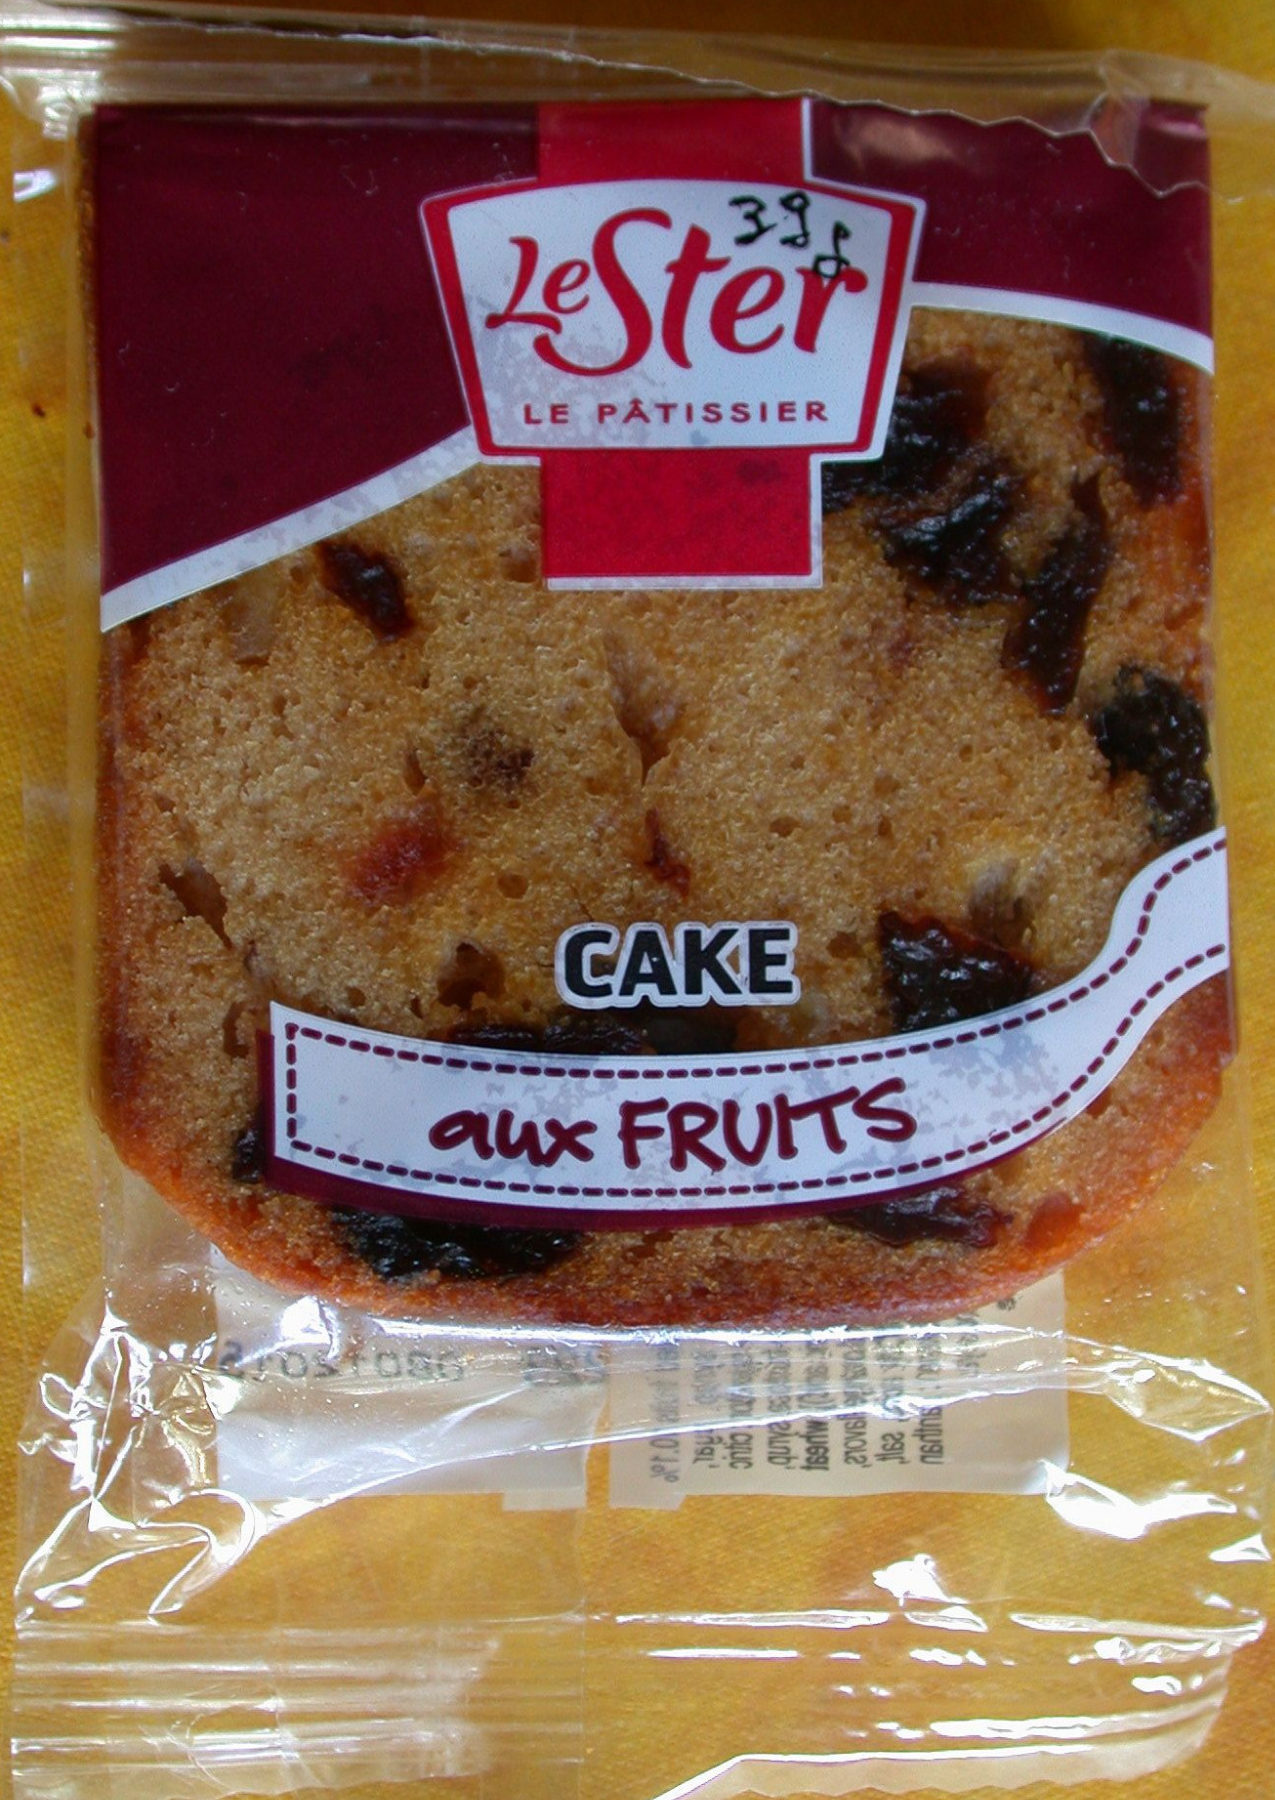 Cake au fruit - Product